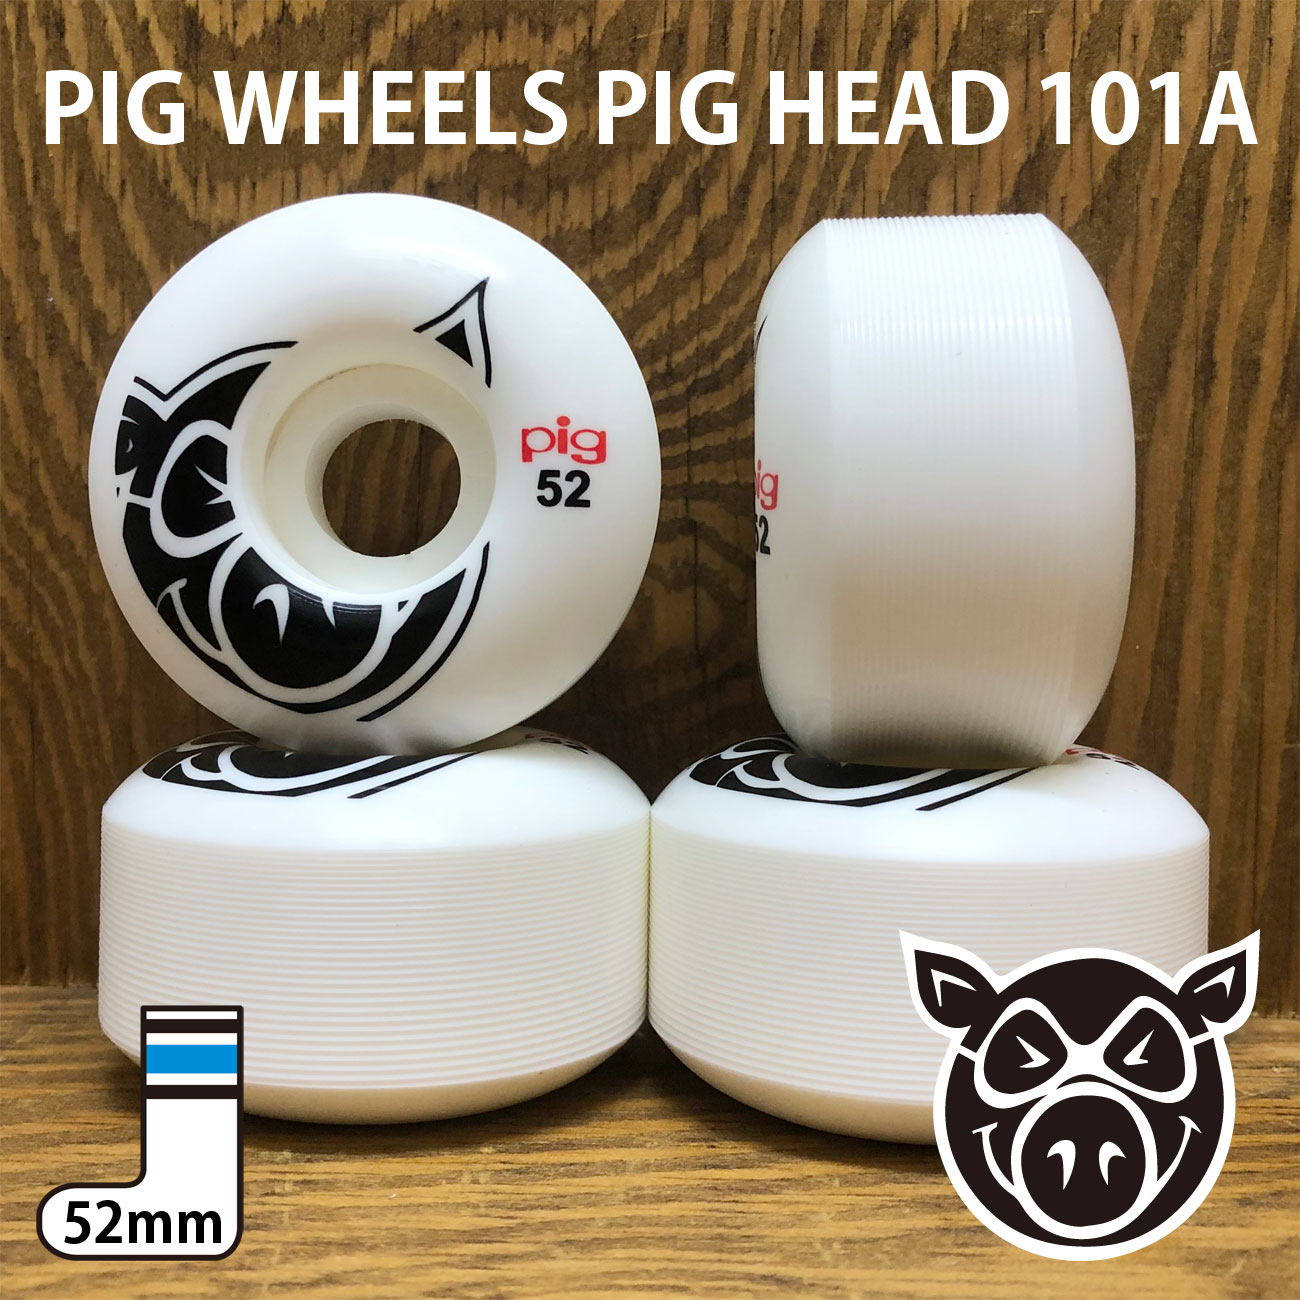 PIG WHEELS PIG HEAD 101A 52mm